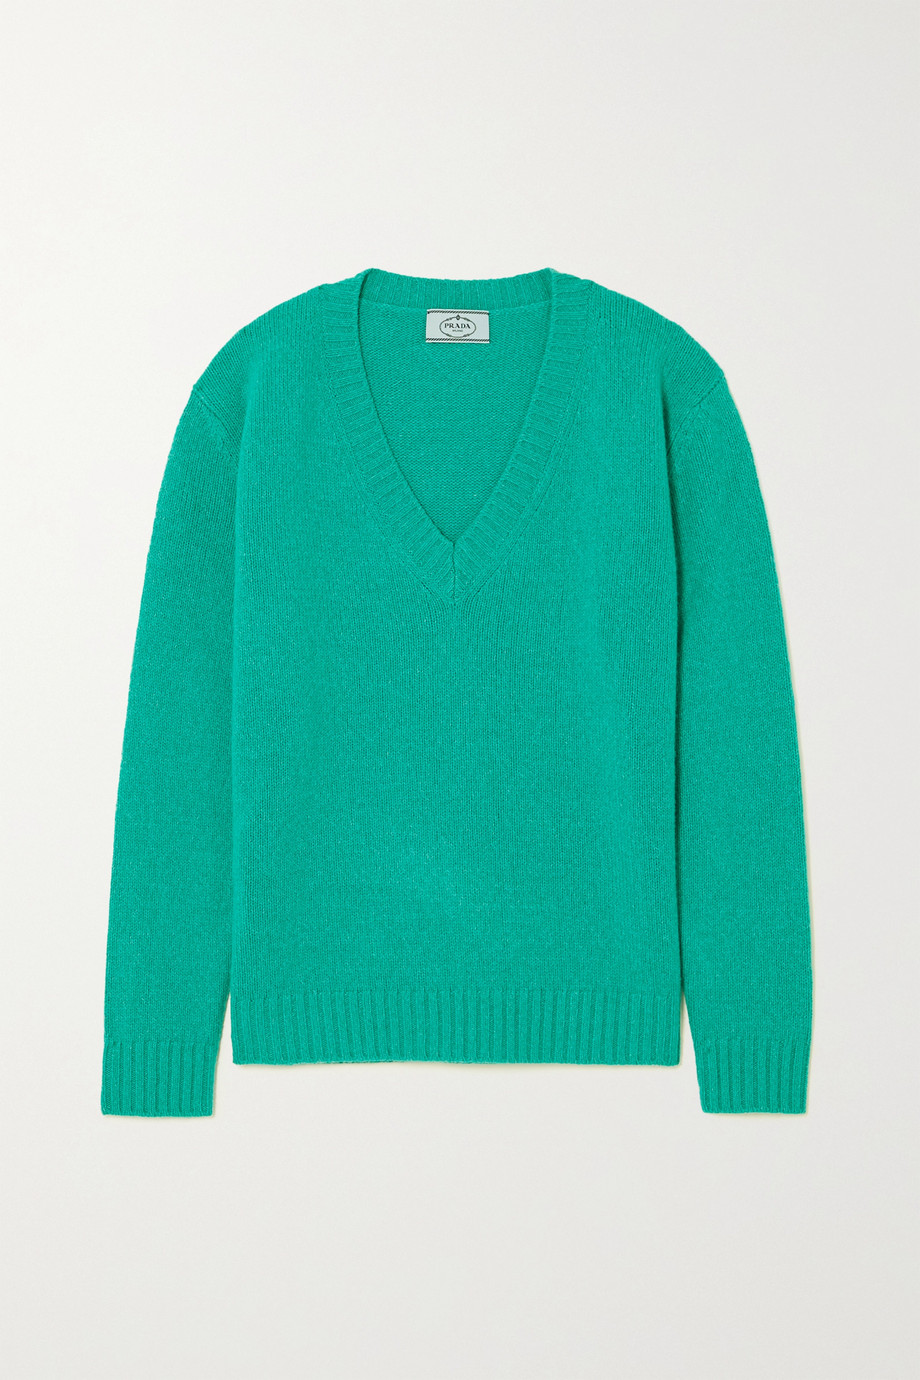 Prada Wool and cashmere-blend sweater